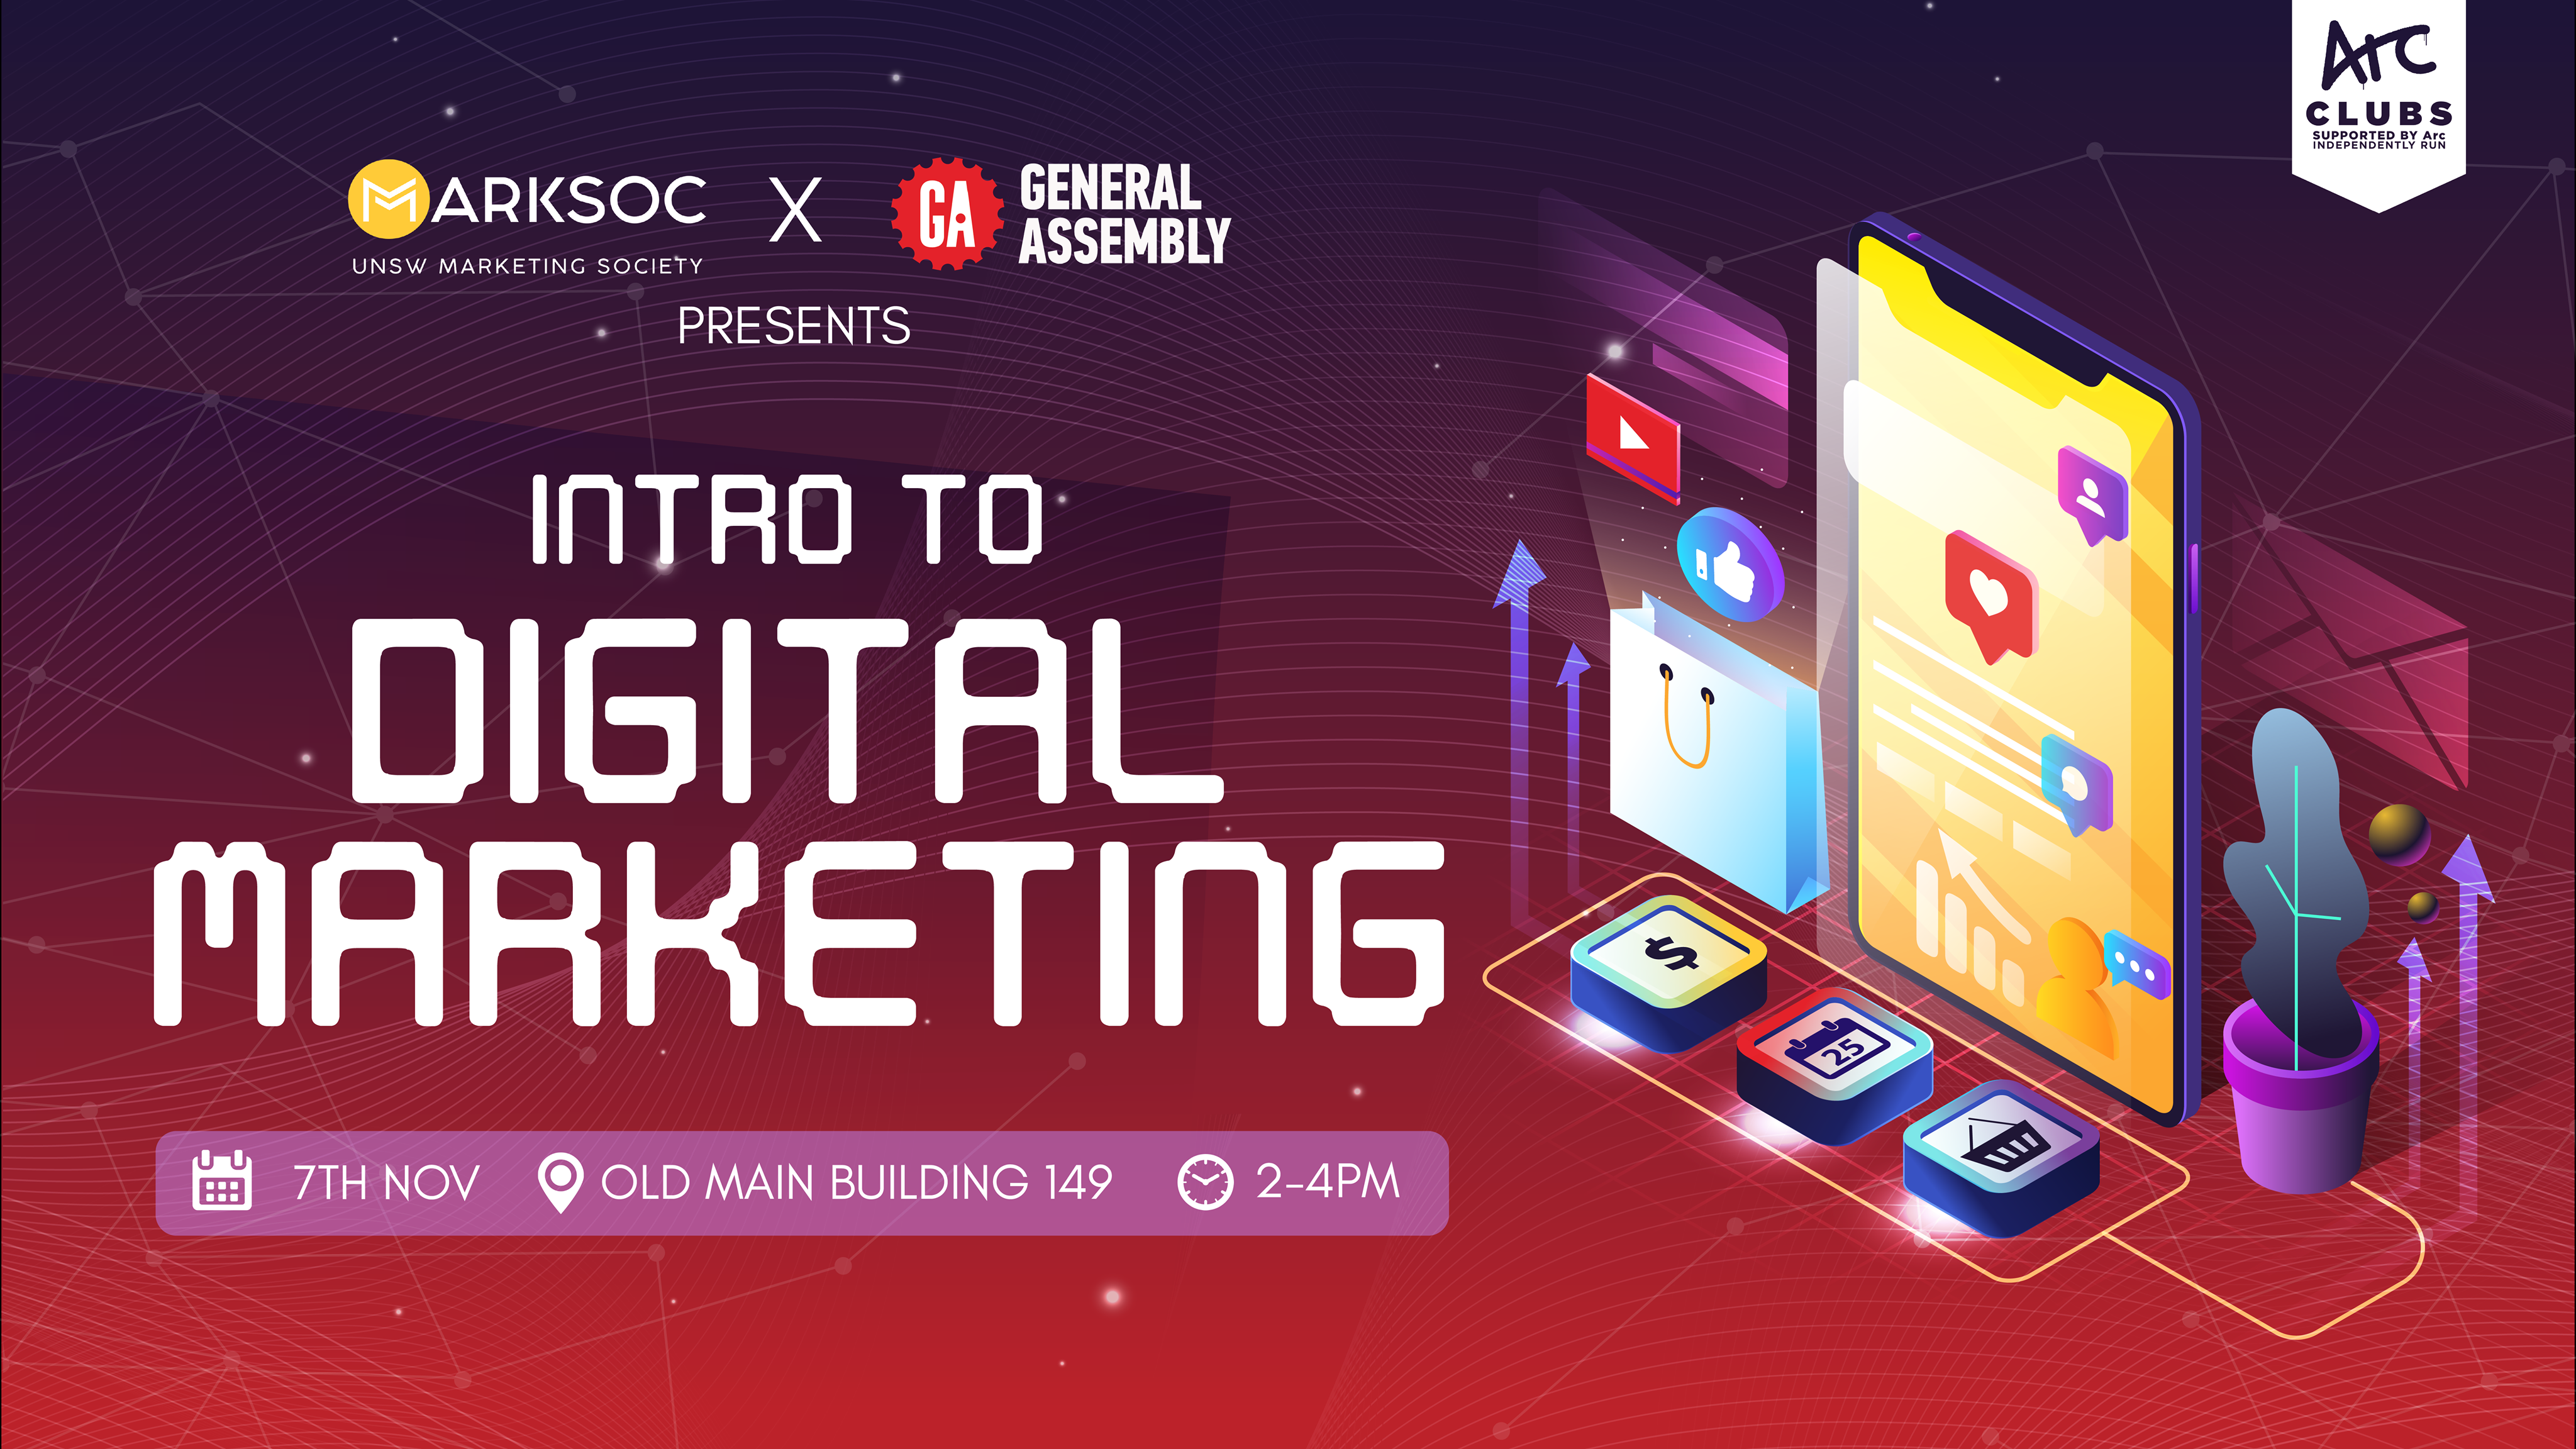 GA x UNSW Marksoc - Intro to Digital Marketing